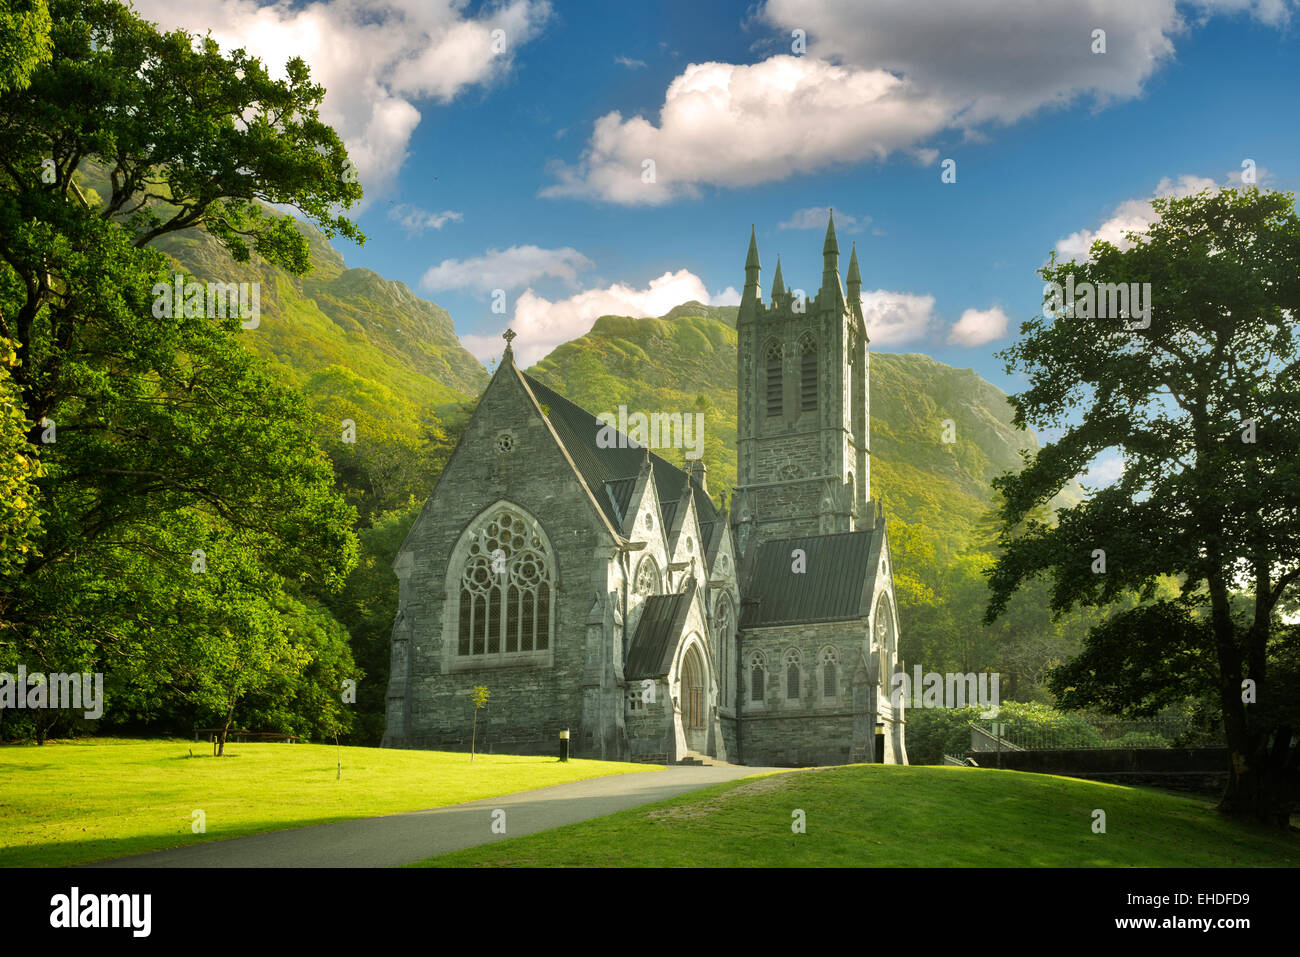 L'église gothique, Mary Henry's Memorial à l'abbaye de Kylemore. La région du Connemara, Photo Stock